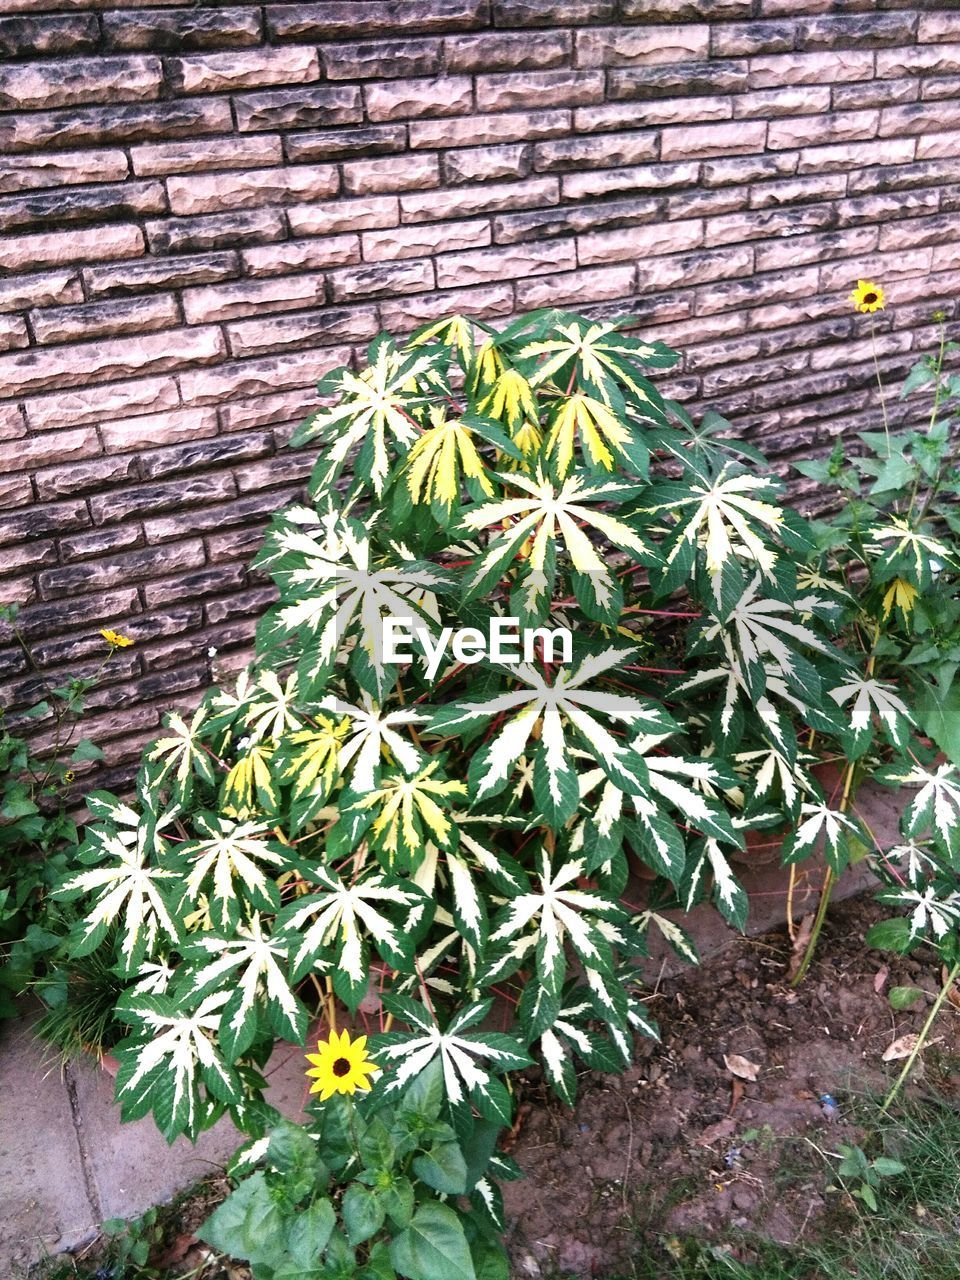 growth, plant, brick wall, outdoors, flower, nature, day, green color, high angle view, no people, beauty in nature, close-up, freshness